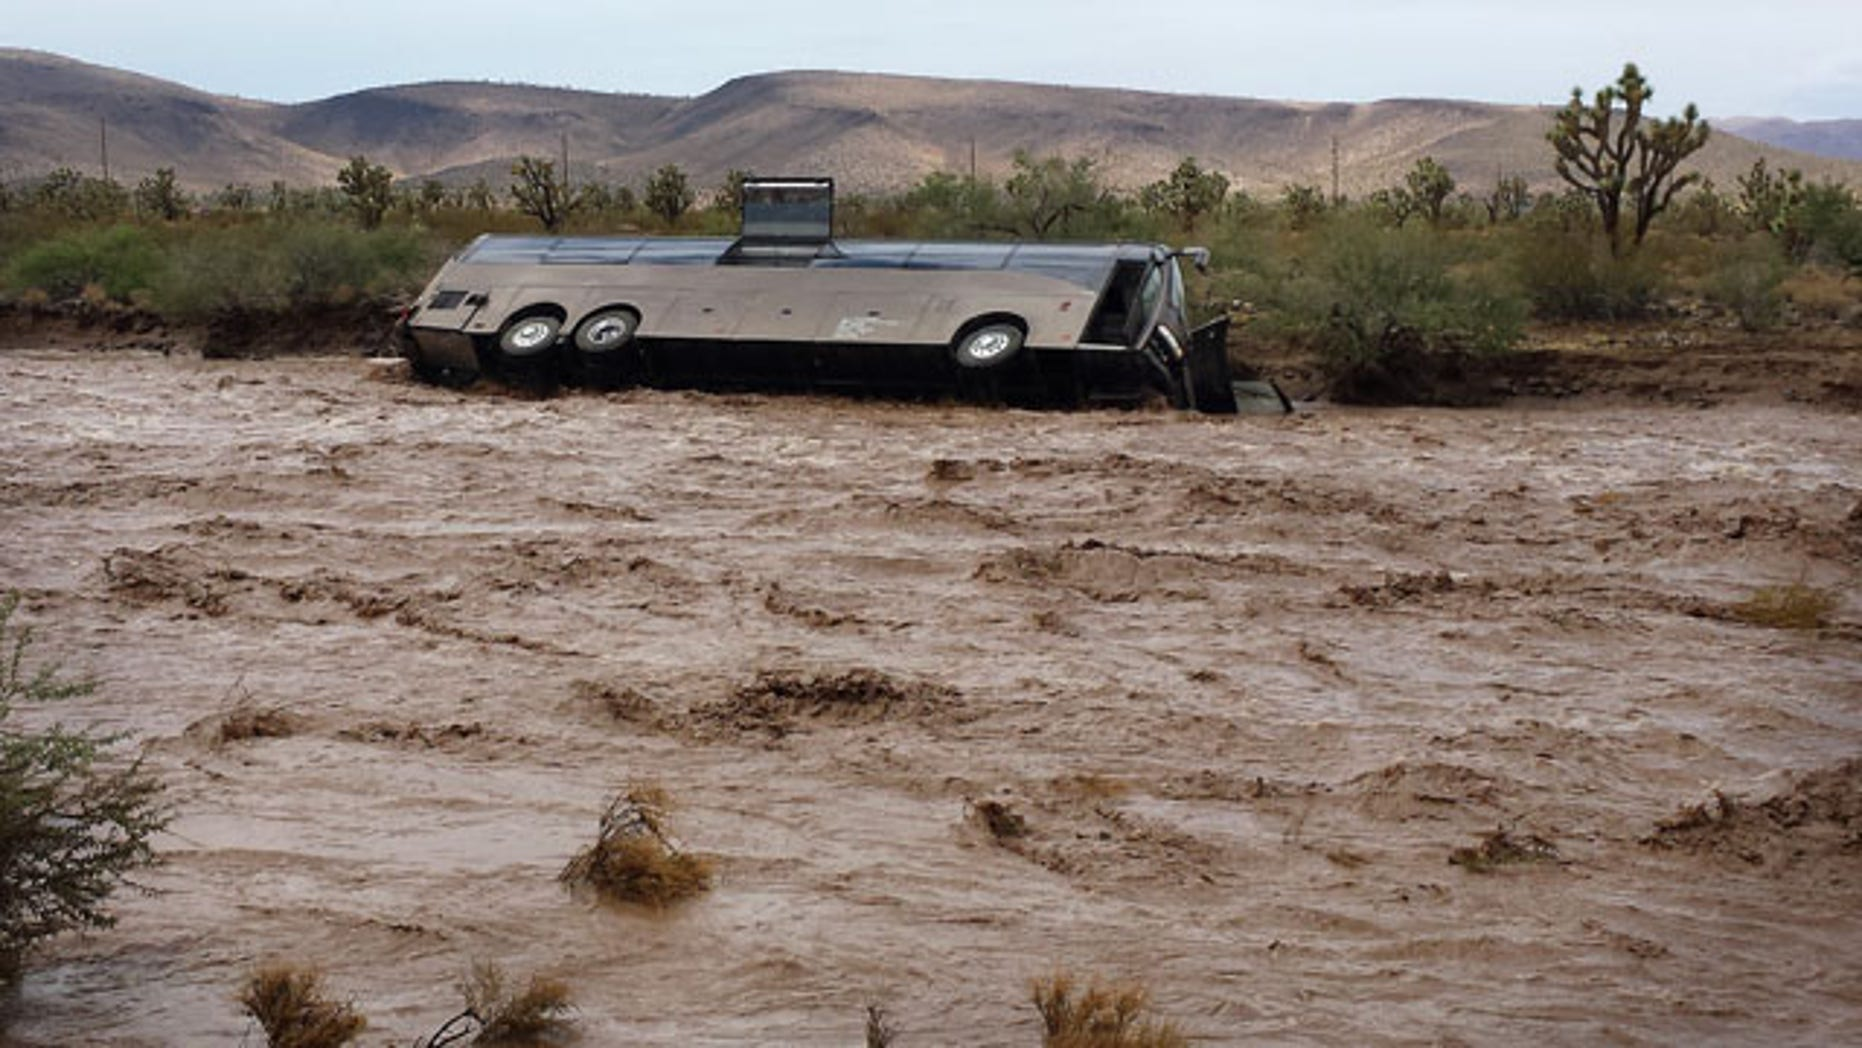 July 28, 2013: This photo released by the Northern Arizona Consolidated Fire District shows a Las Vegas-bound tour bus lies on its side in a flooded desert wash near Dolan Springs, Ariz. after being swept away by floodwaters amid heavy rains. (AP Photo)